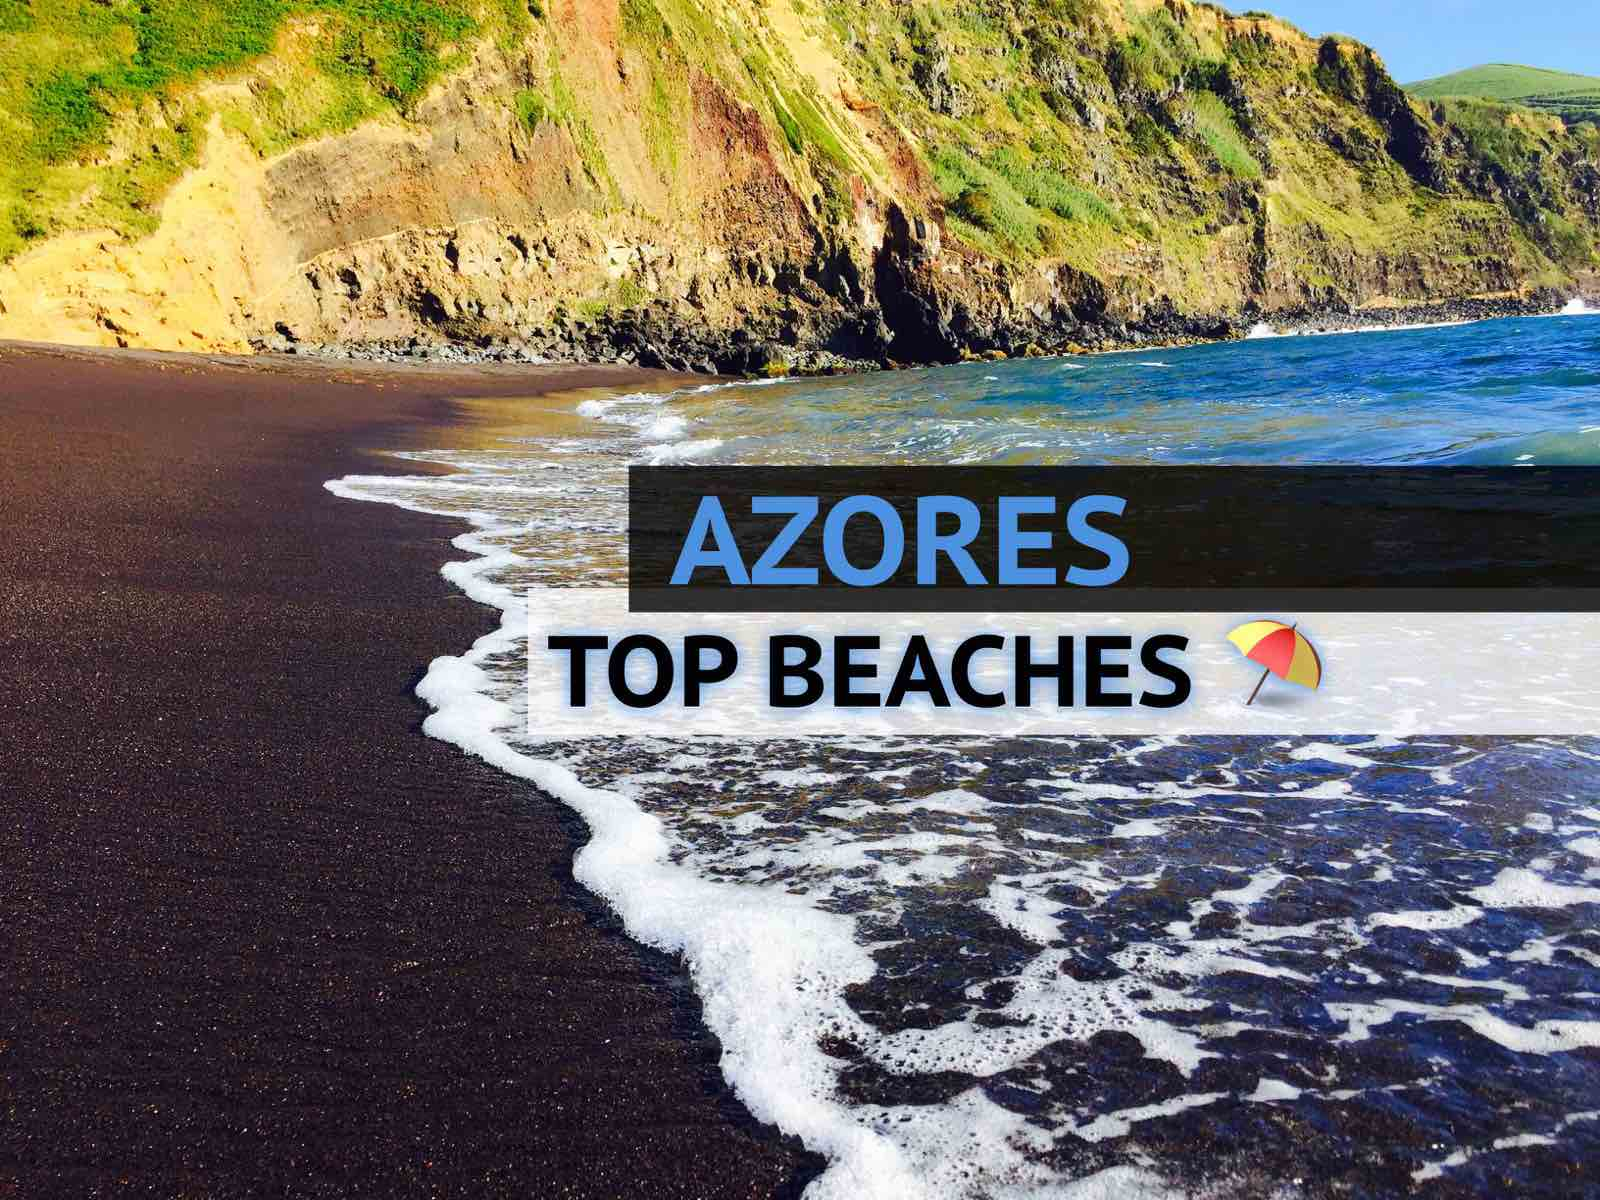 The 12 Most Beautiful Sandy Beaches In Azores